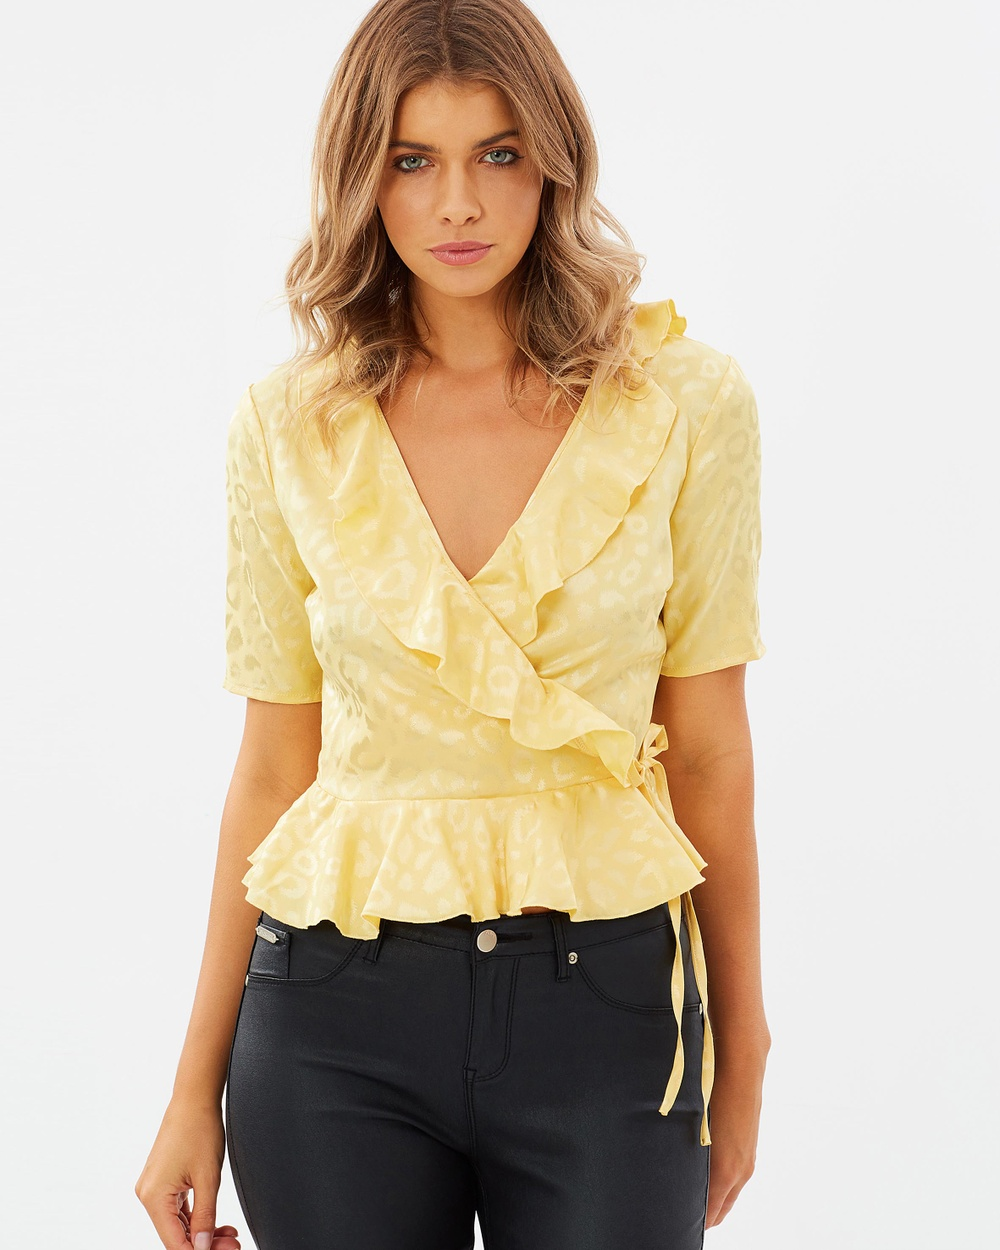 Atmos & Here ICONIC EXCLUSIVE Carol Frill Wrap Top Tops Yellow ICONIC EXCLUSIVE Carol Frill Wrap Top